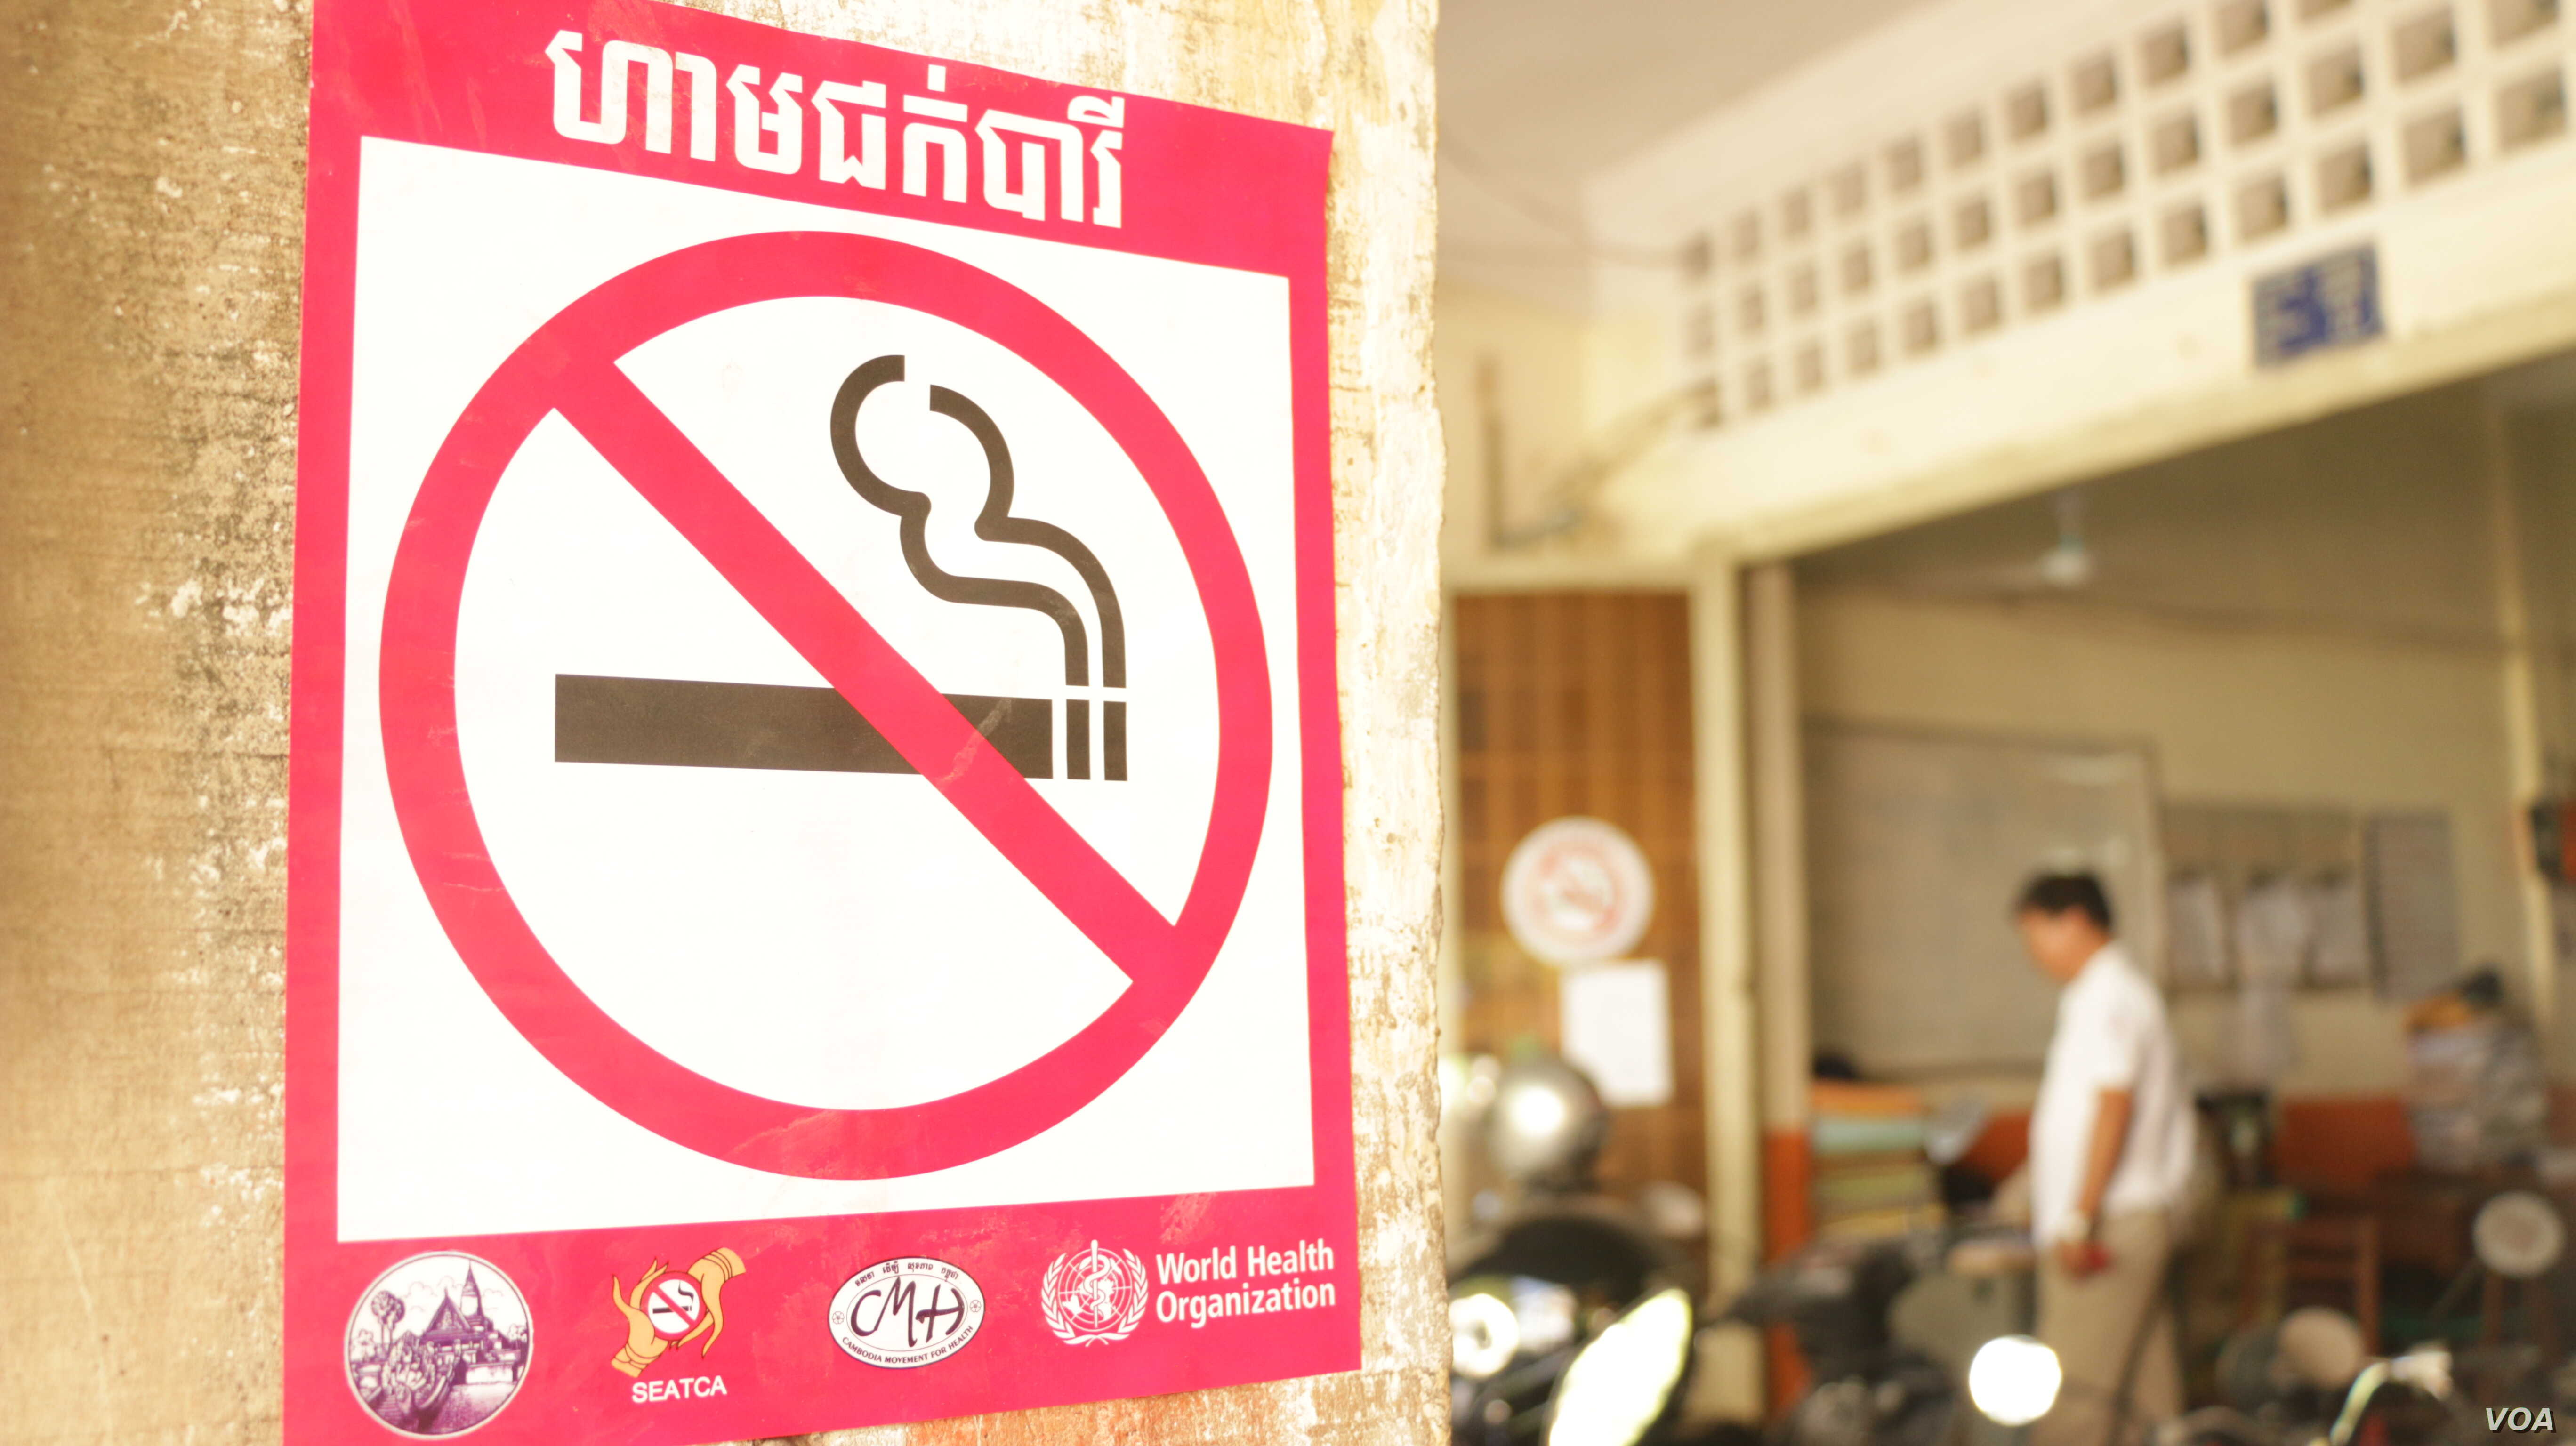 Tobacco Treaty Has Helped Cut Smoking Rates, But More Work